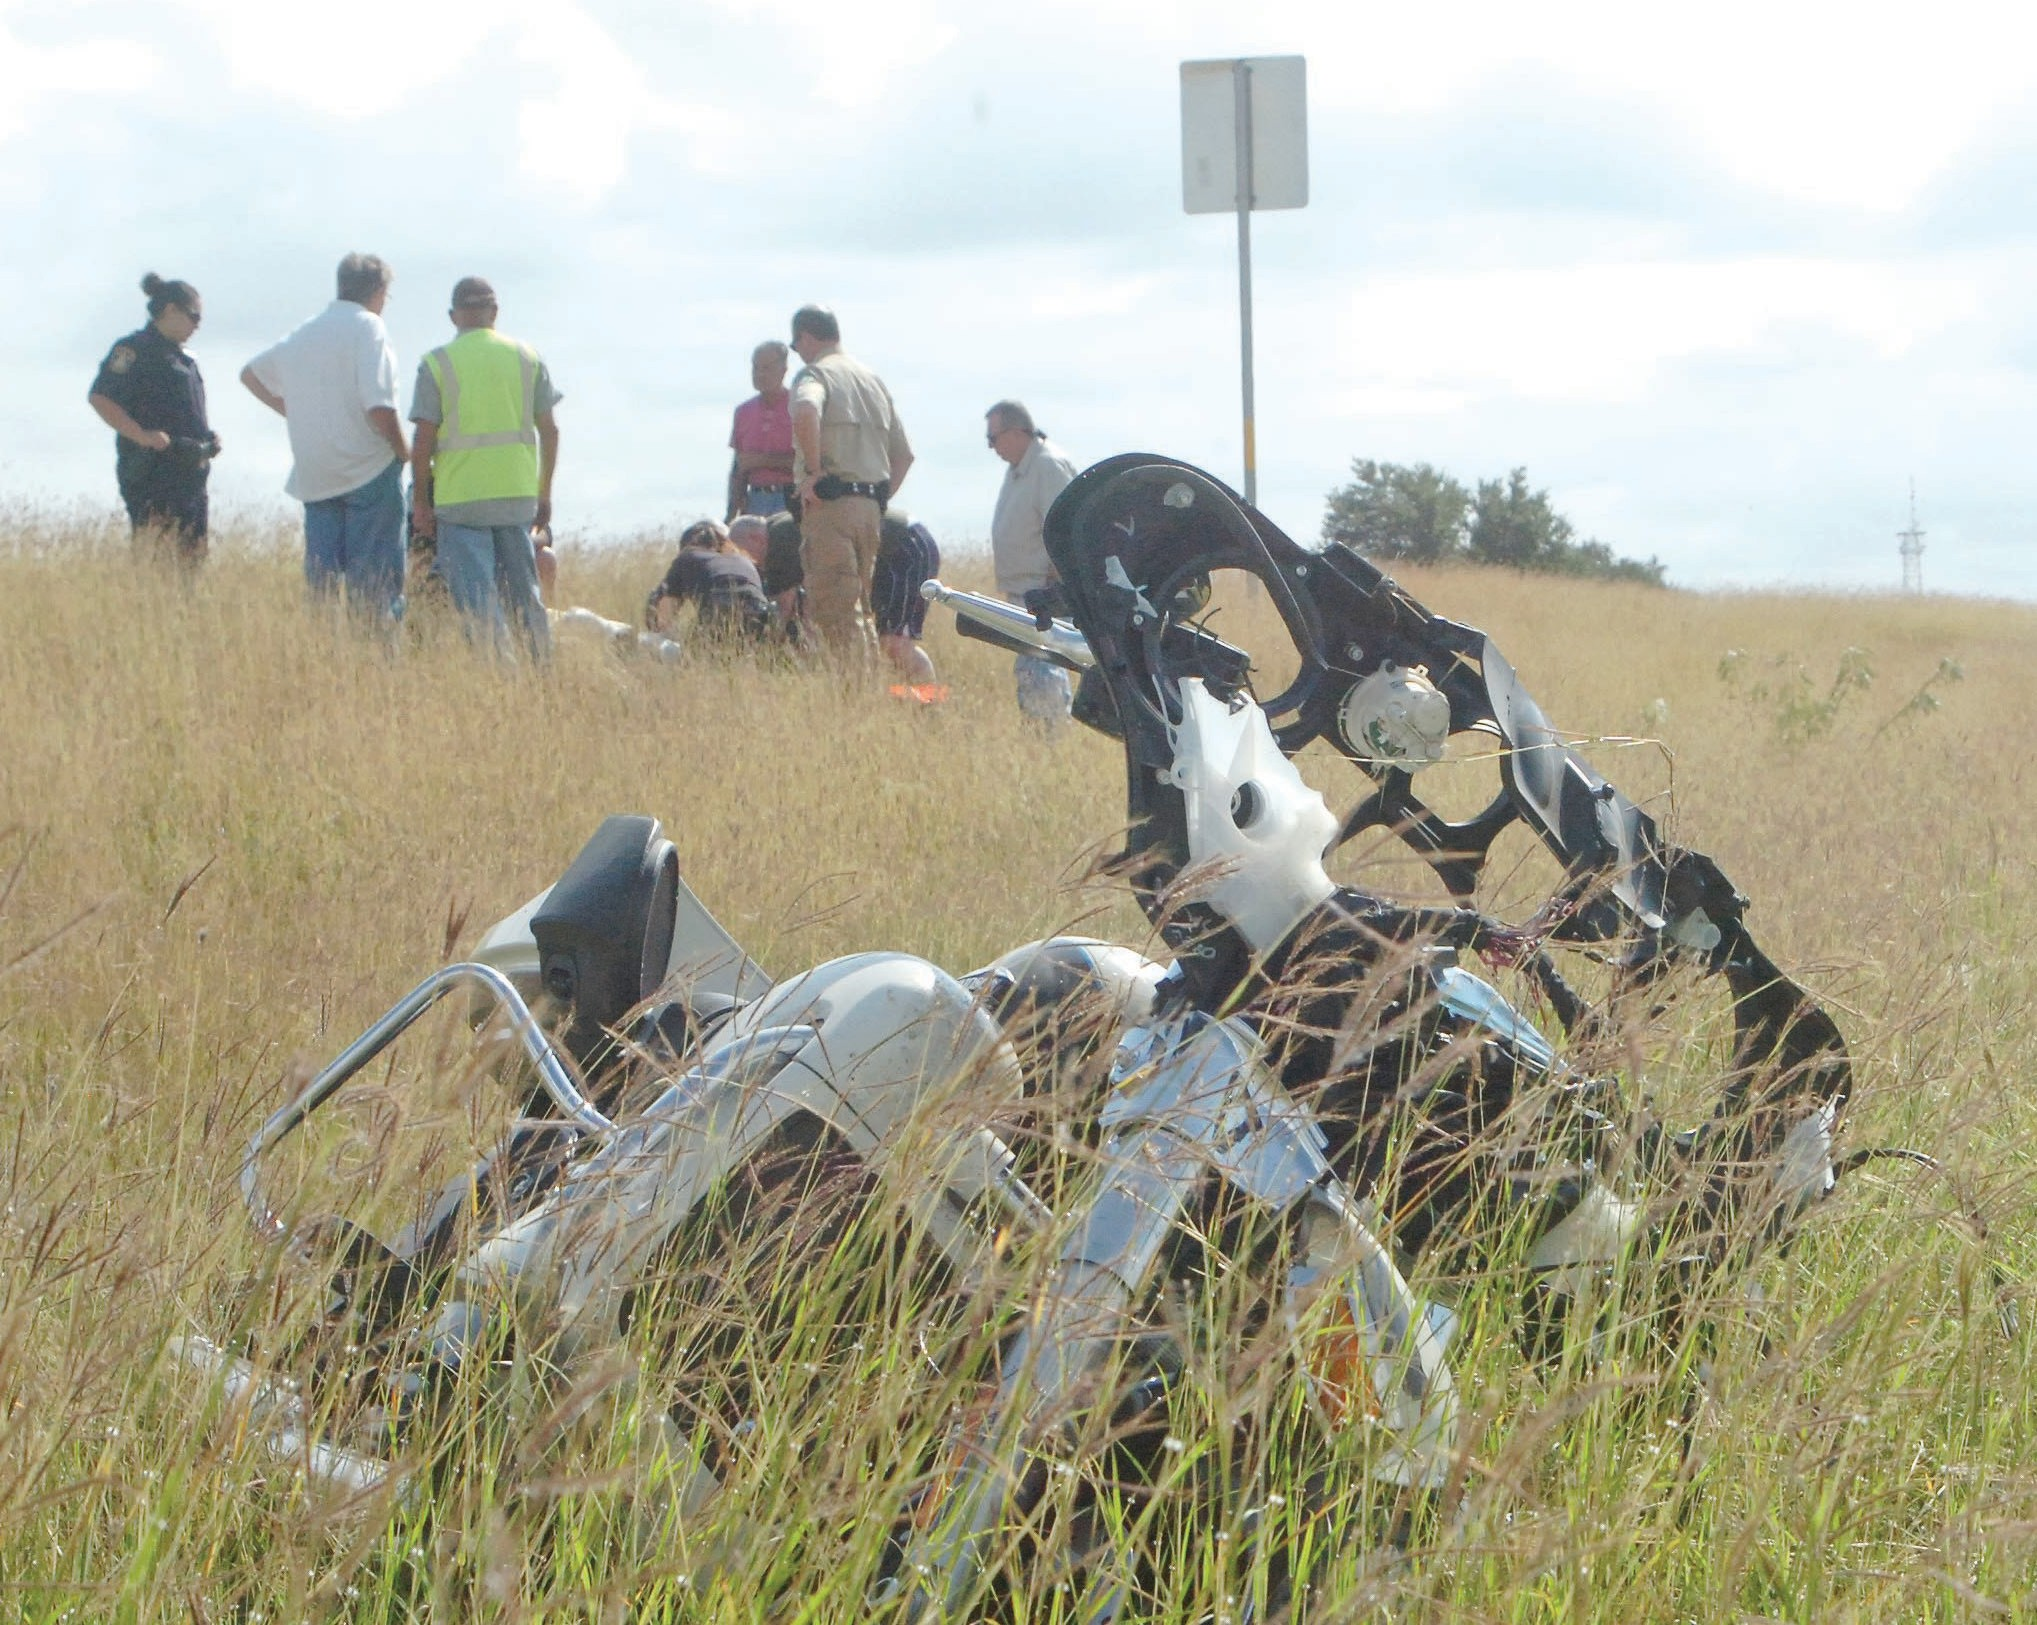 A motorcyclist was injured in an accident on Hwy 281 and 37. The accident occurred on October 29th.